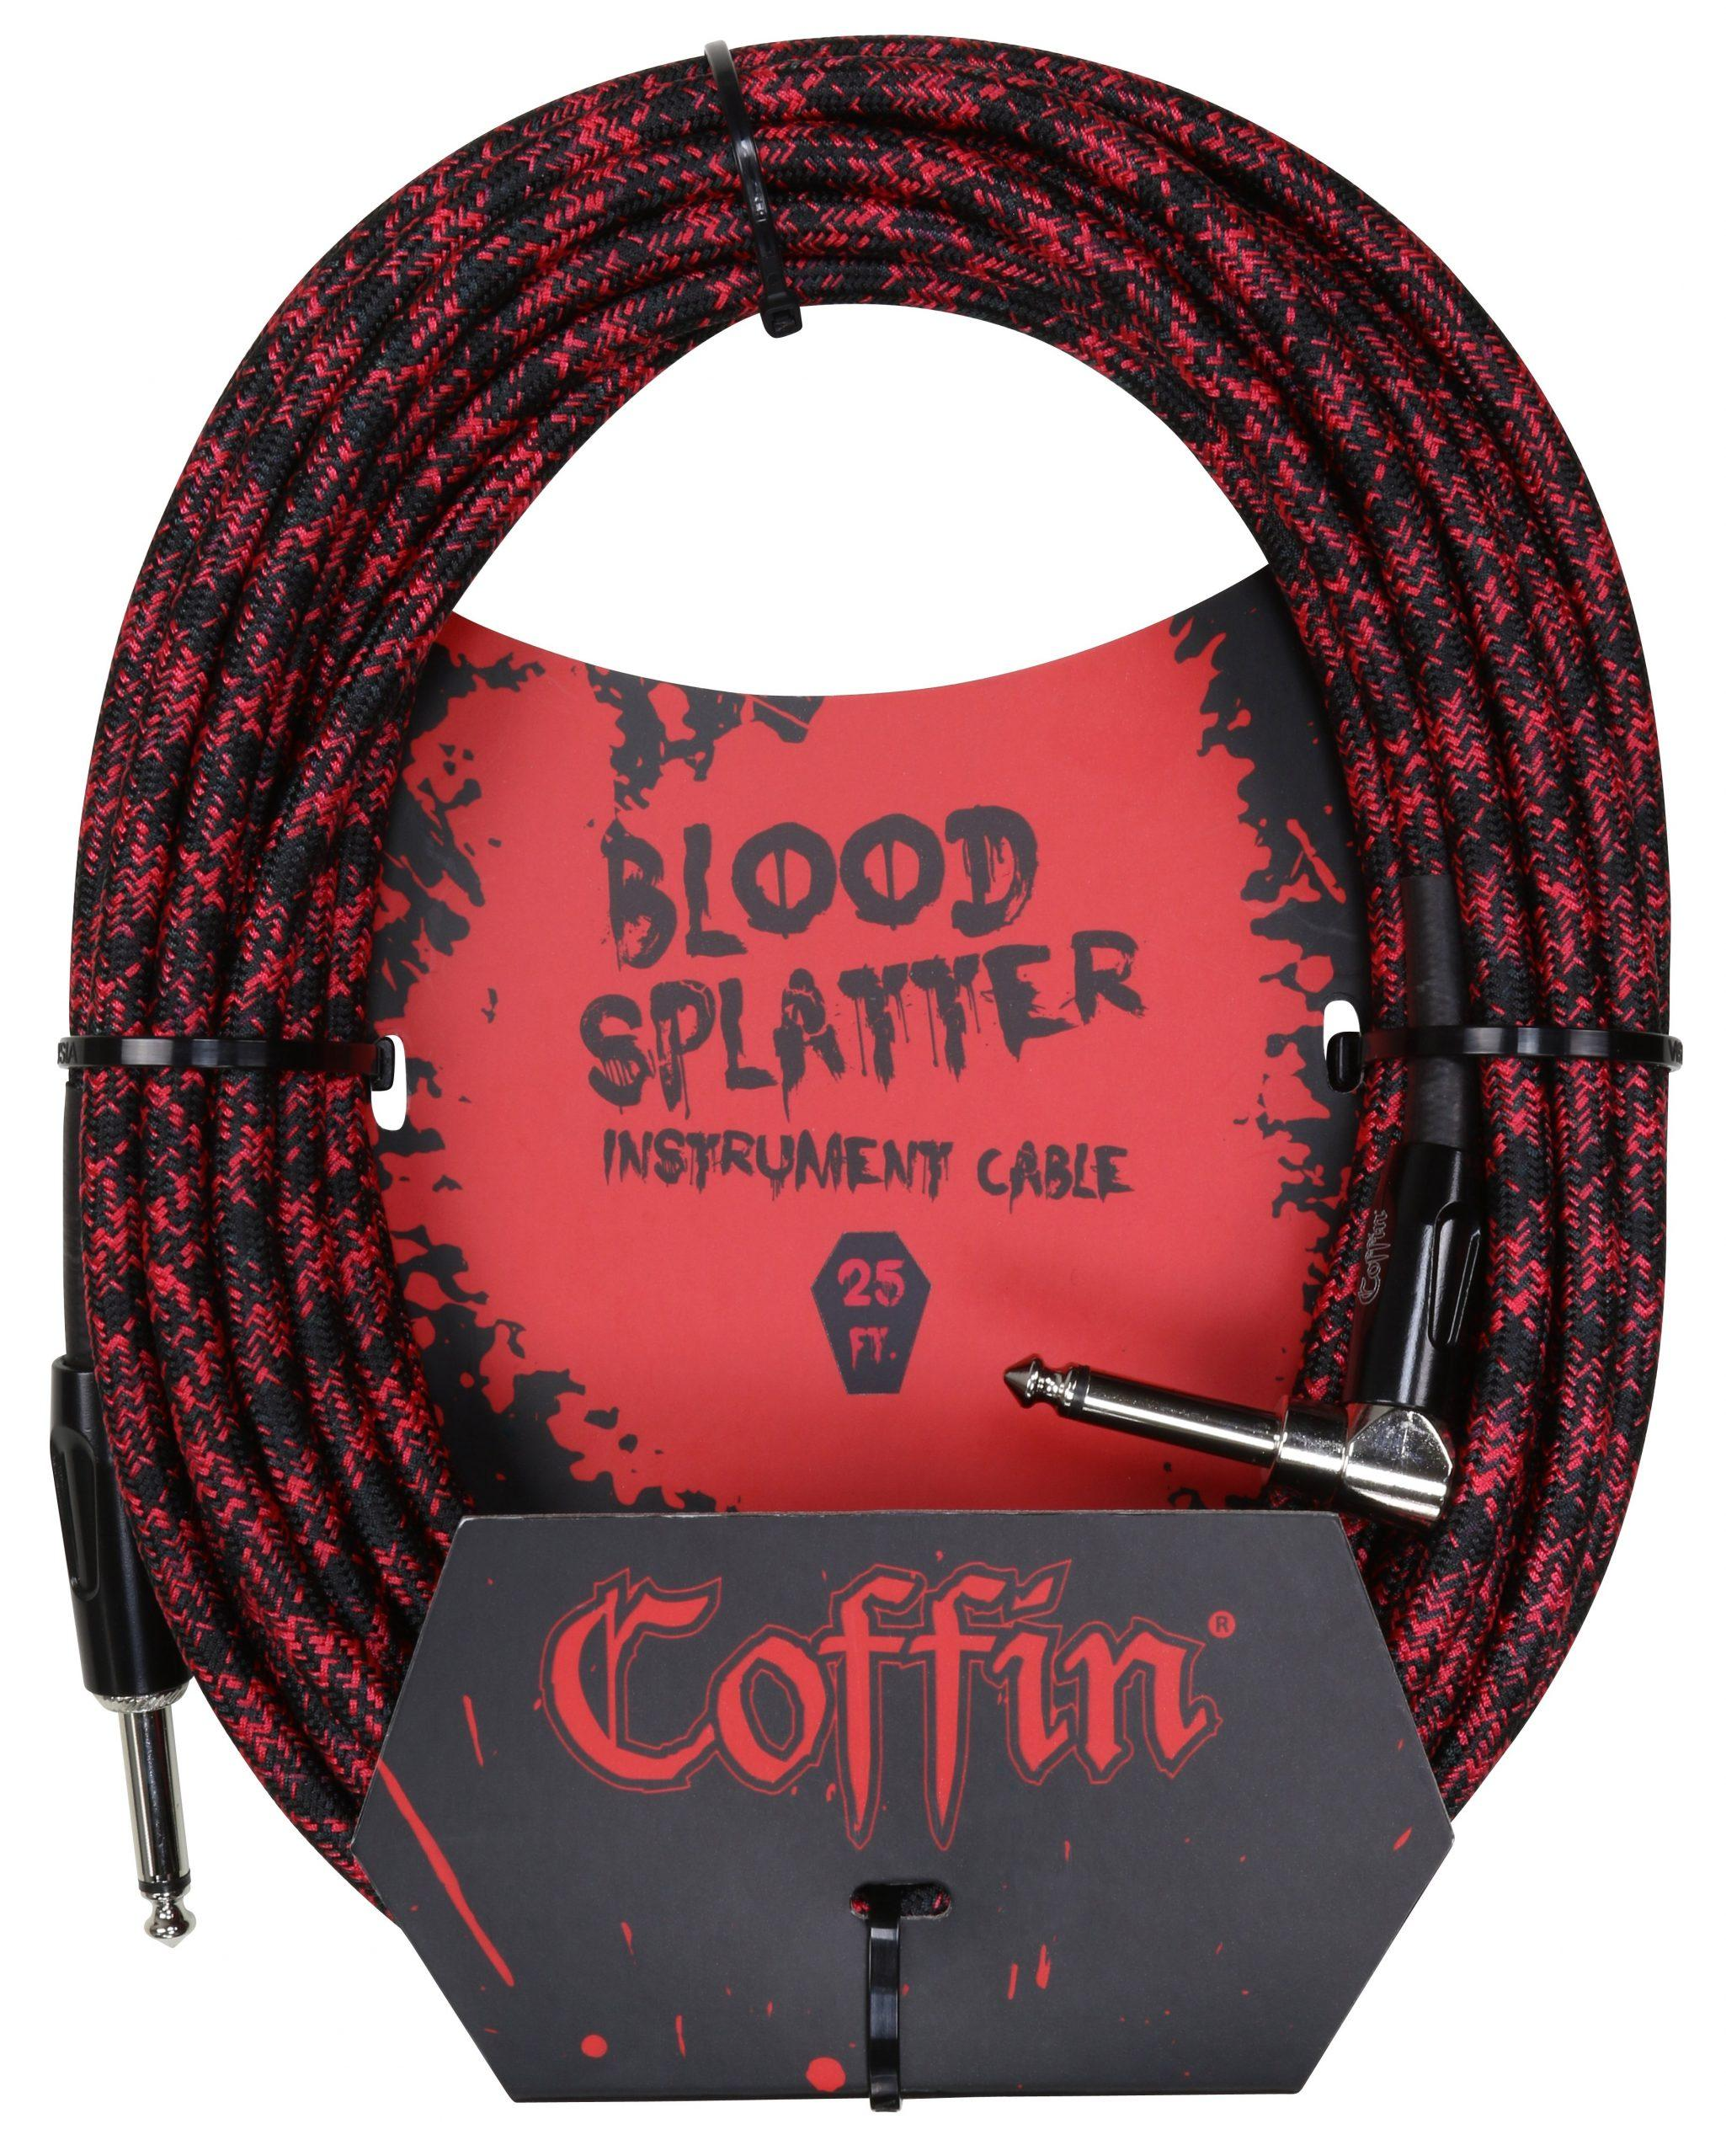 Bloodsplatter Instrument Cable 25ft. Right Angle